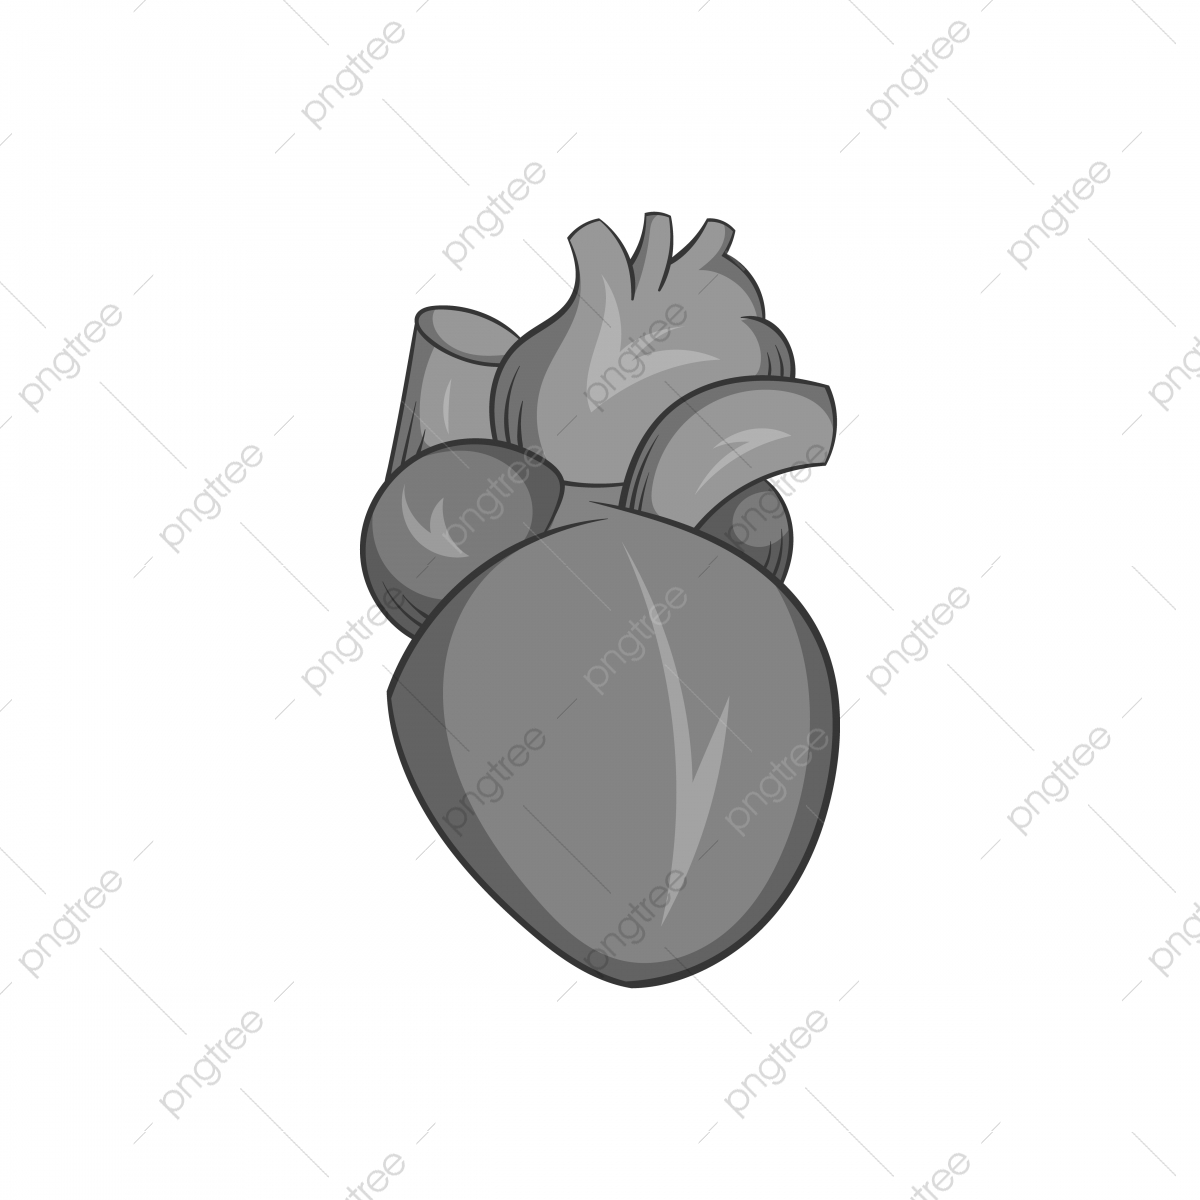 Human Icon Png Vector Psd And Clipart With Transparent Background For Free Download Pngtree Is that as's bug, or after api 26, the adaptive icons you just can't have transparency in the background? https pngtree com freepng heart human icon black monochrome style 5154587 html